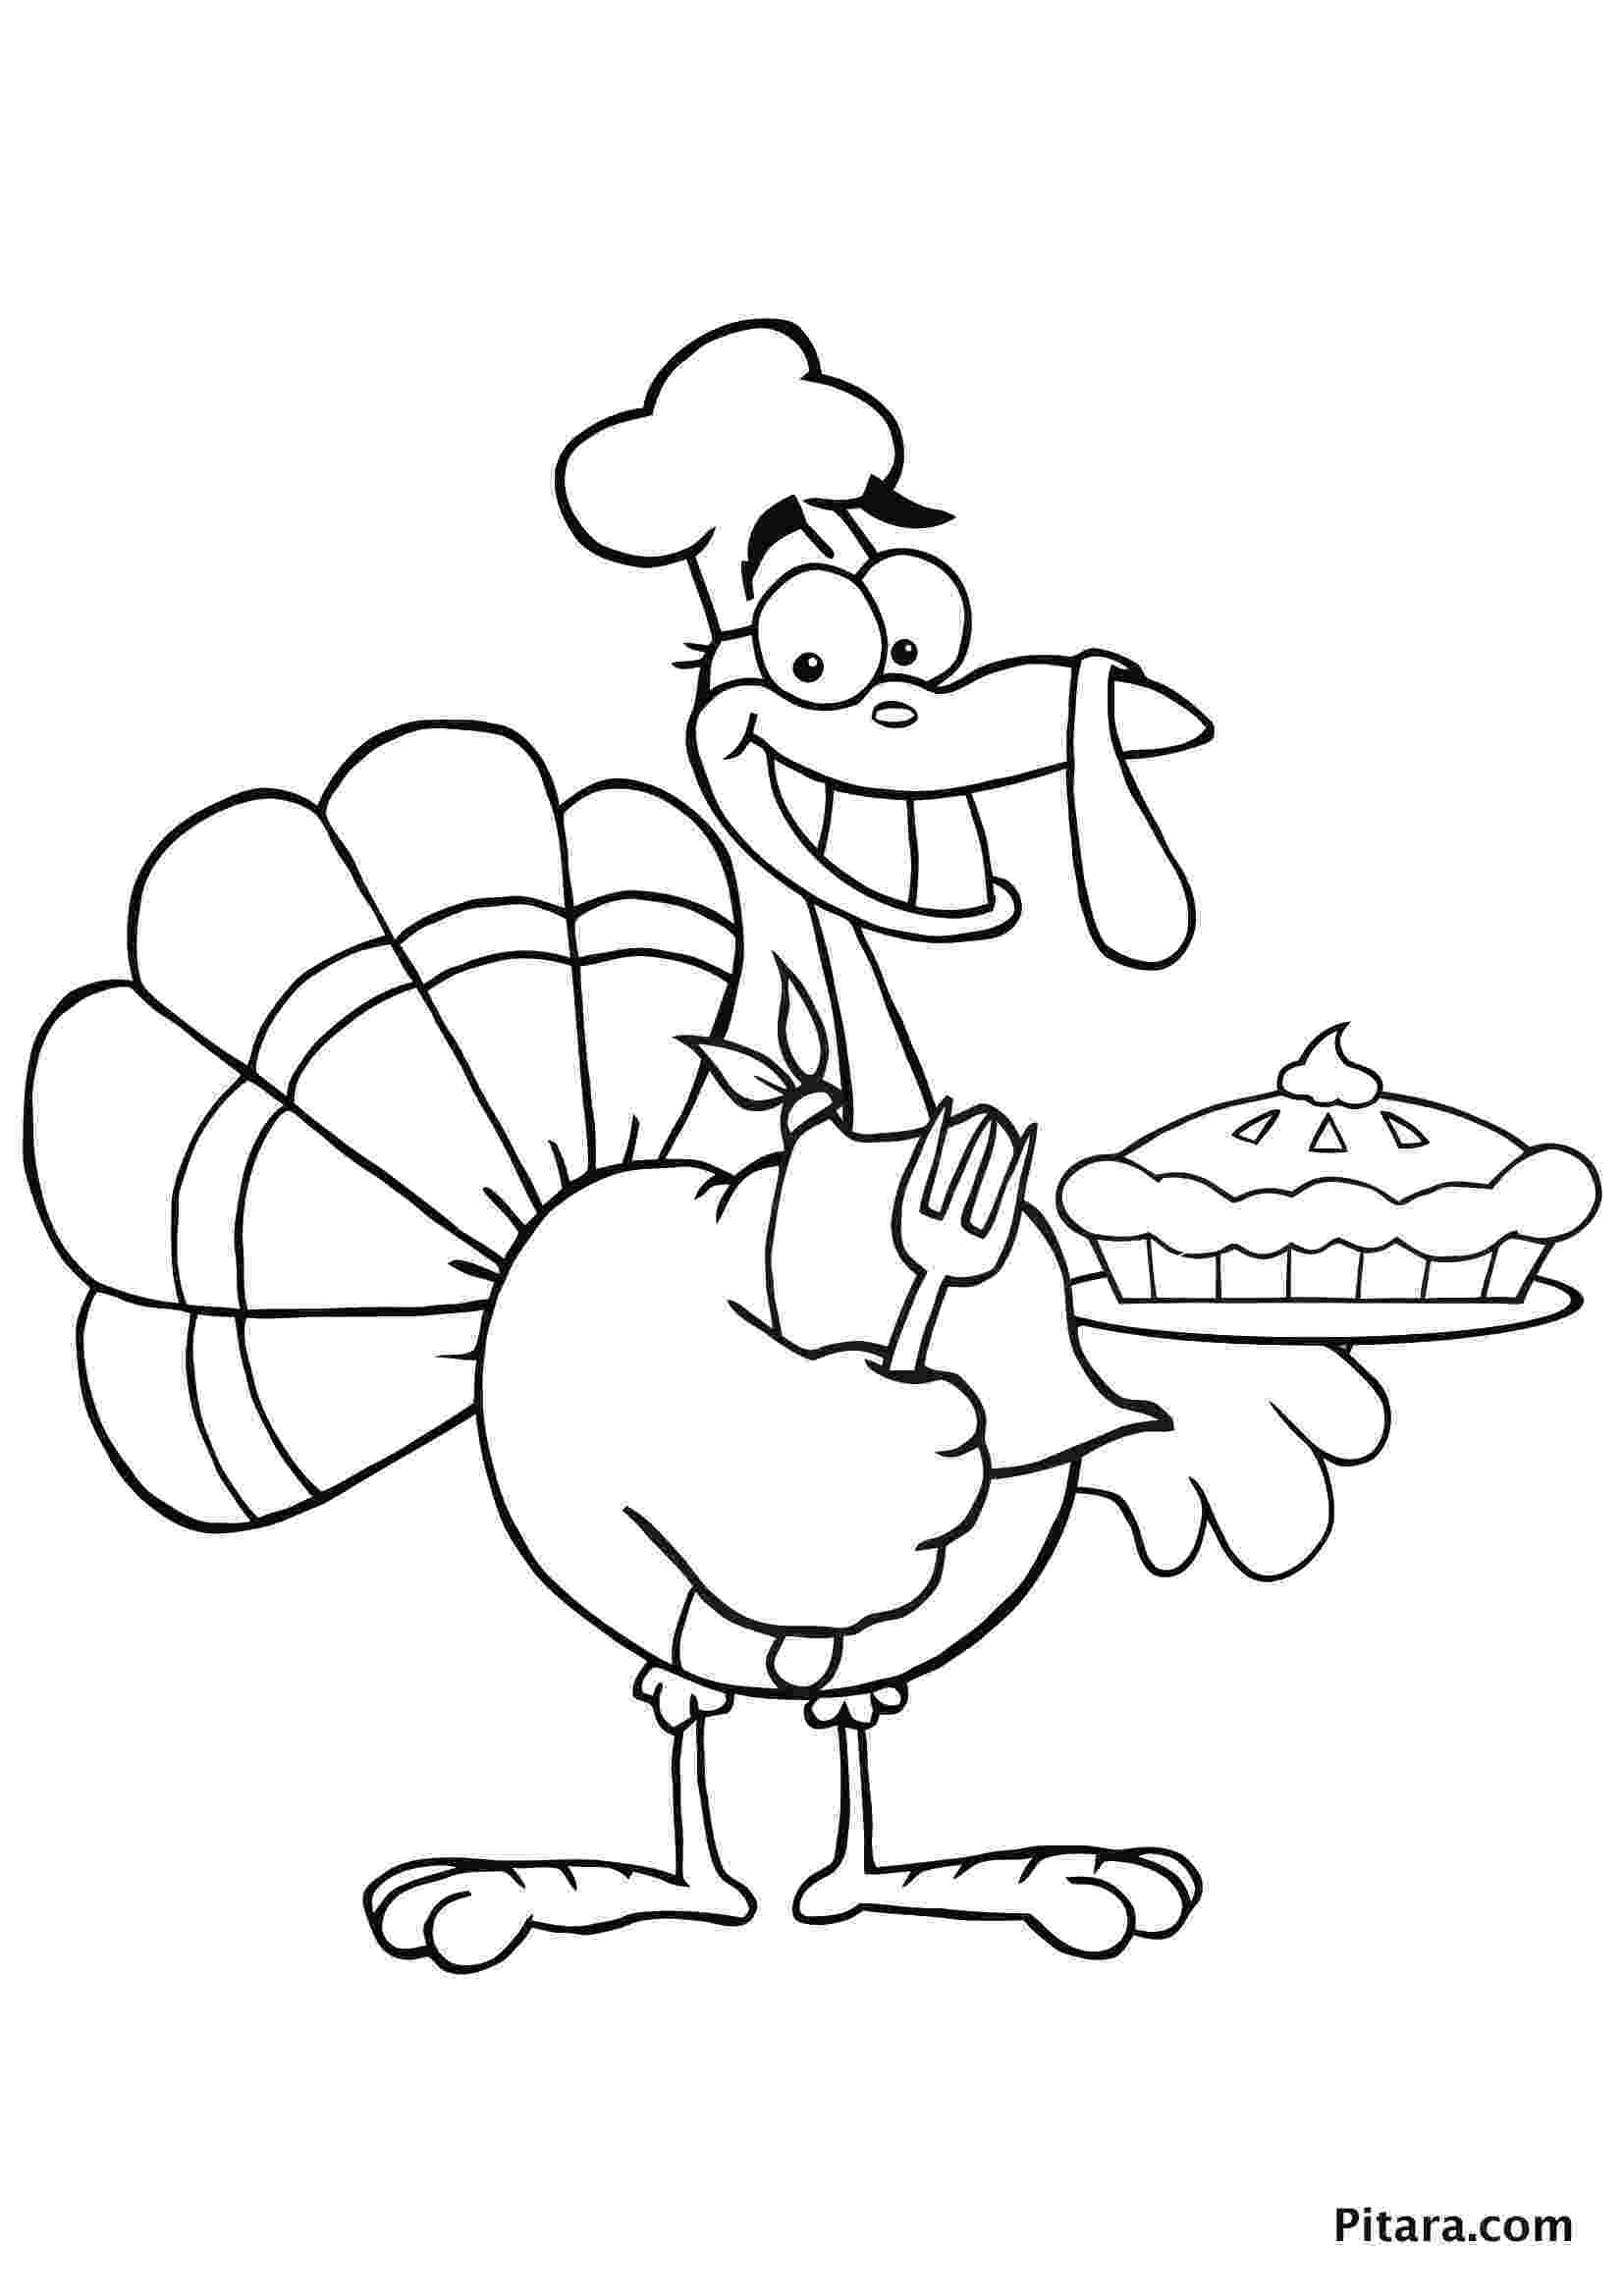 turkey coloring sheet turkey coloring pages for kids pitara kids network coloring sheet turkey